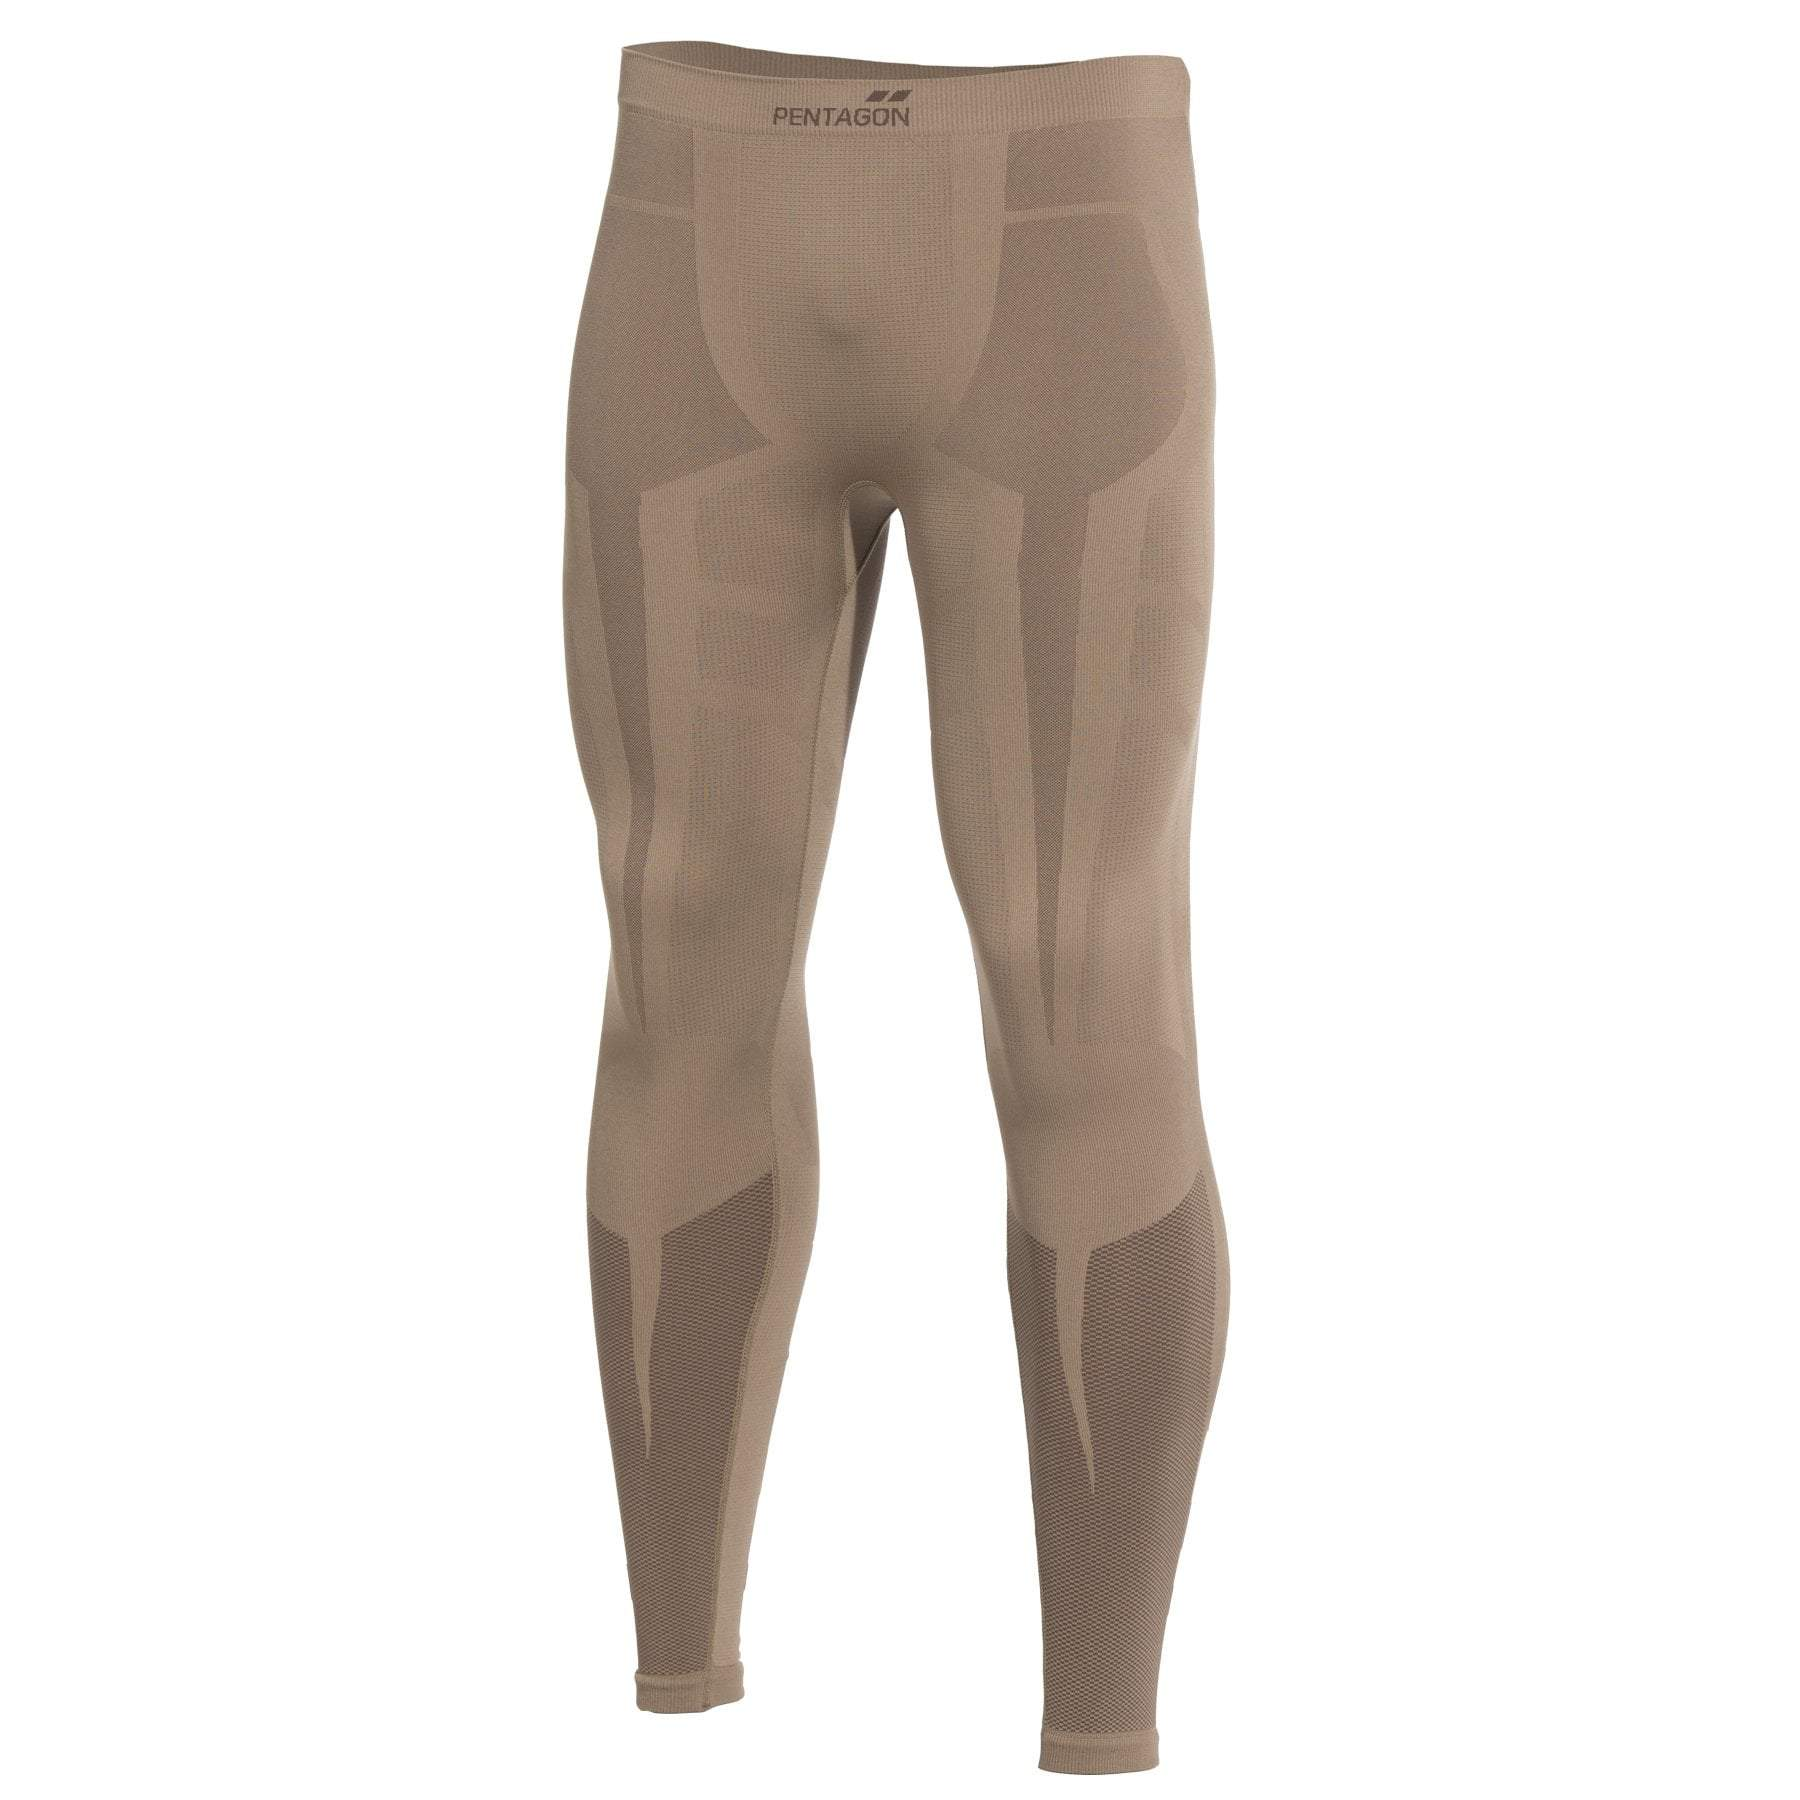 Pentagon Plexis Long Johns Coyote | UKMCPro